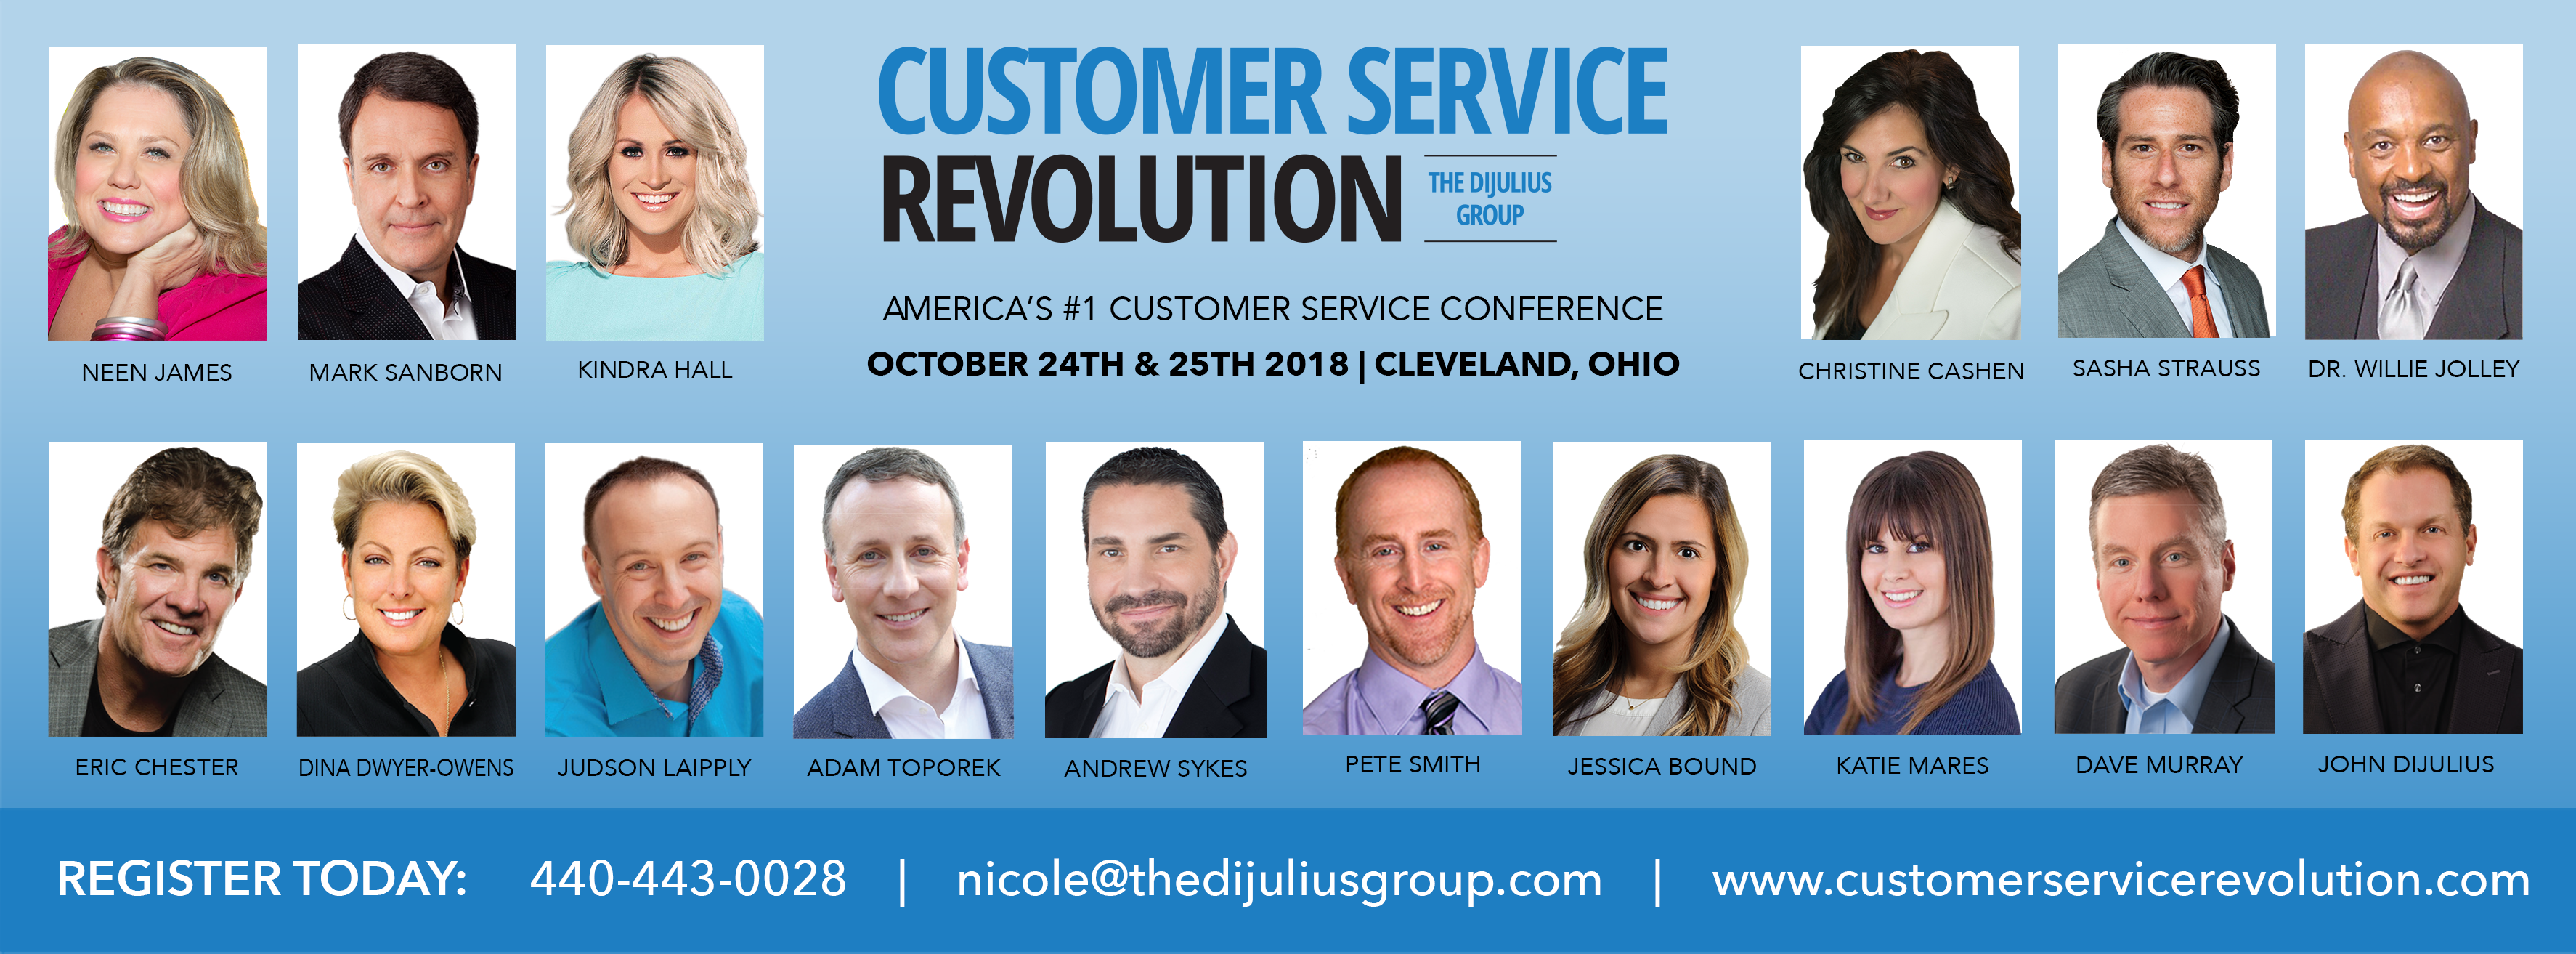 2018 Customer Service Revolution Conference Speaker Lineup